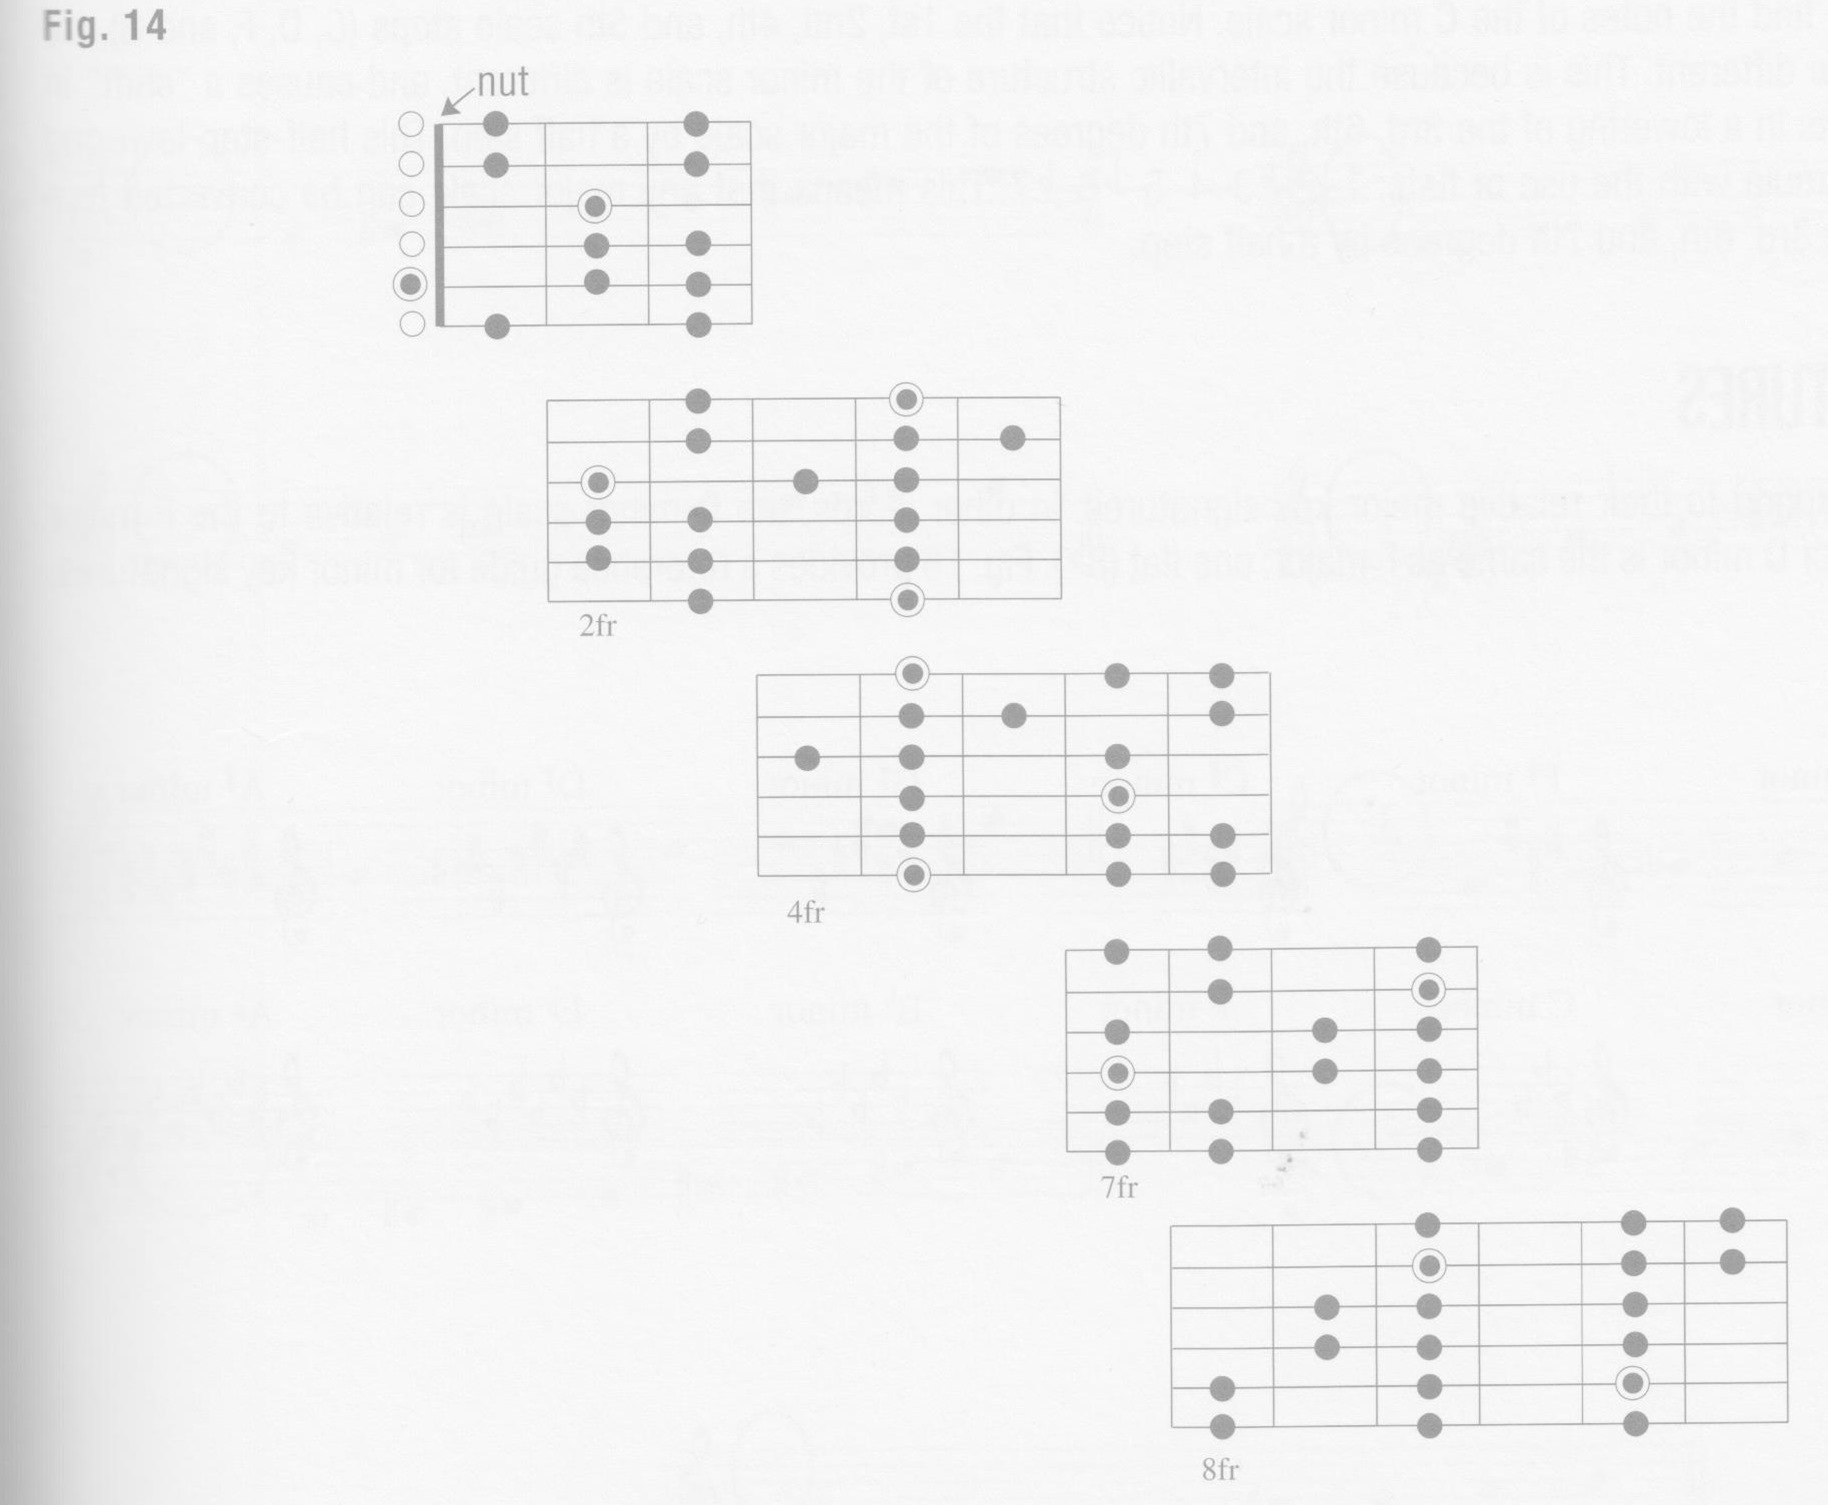 p21-figure-14-a-minor-scales